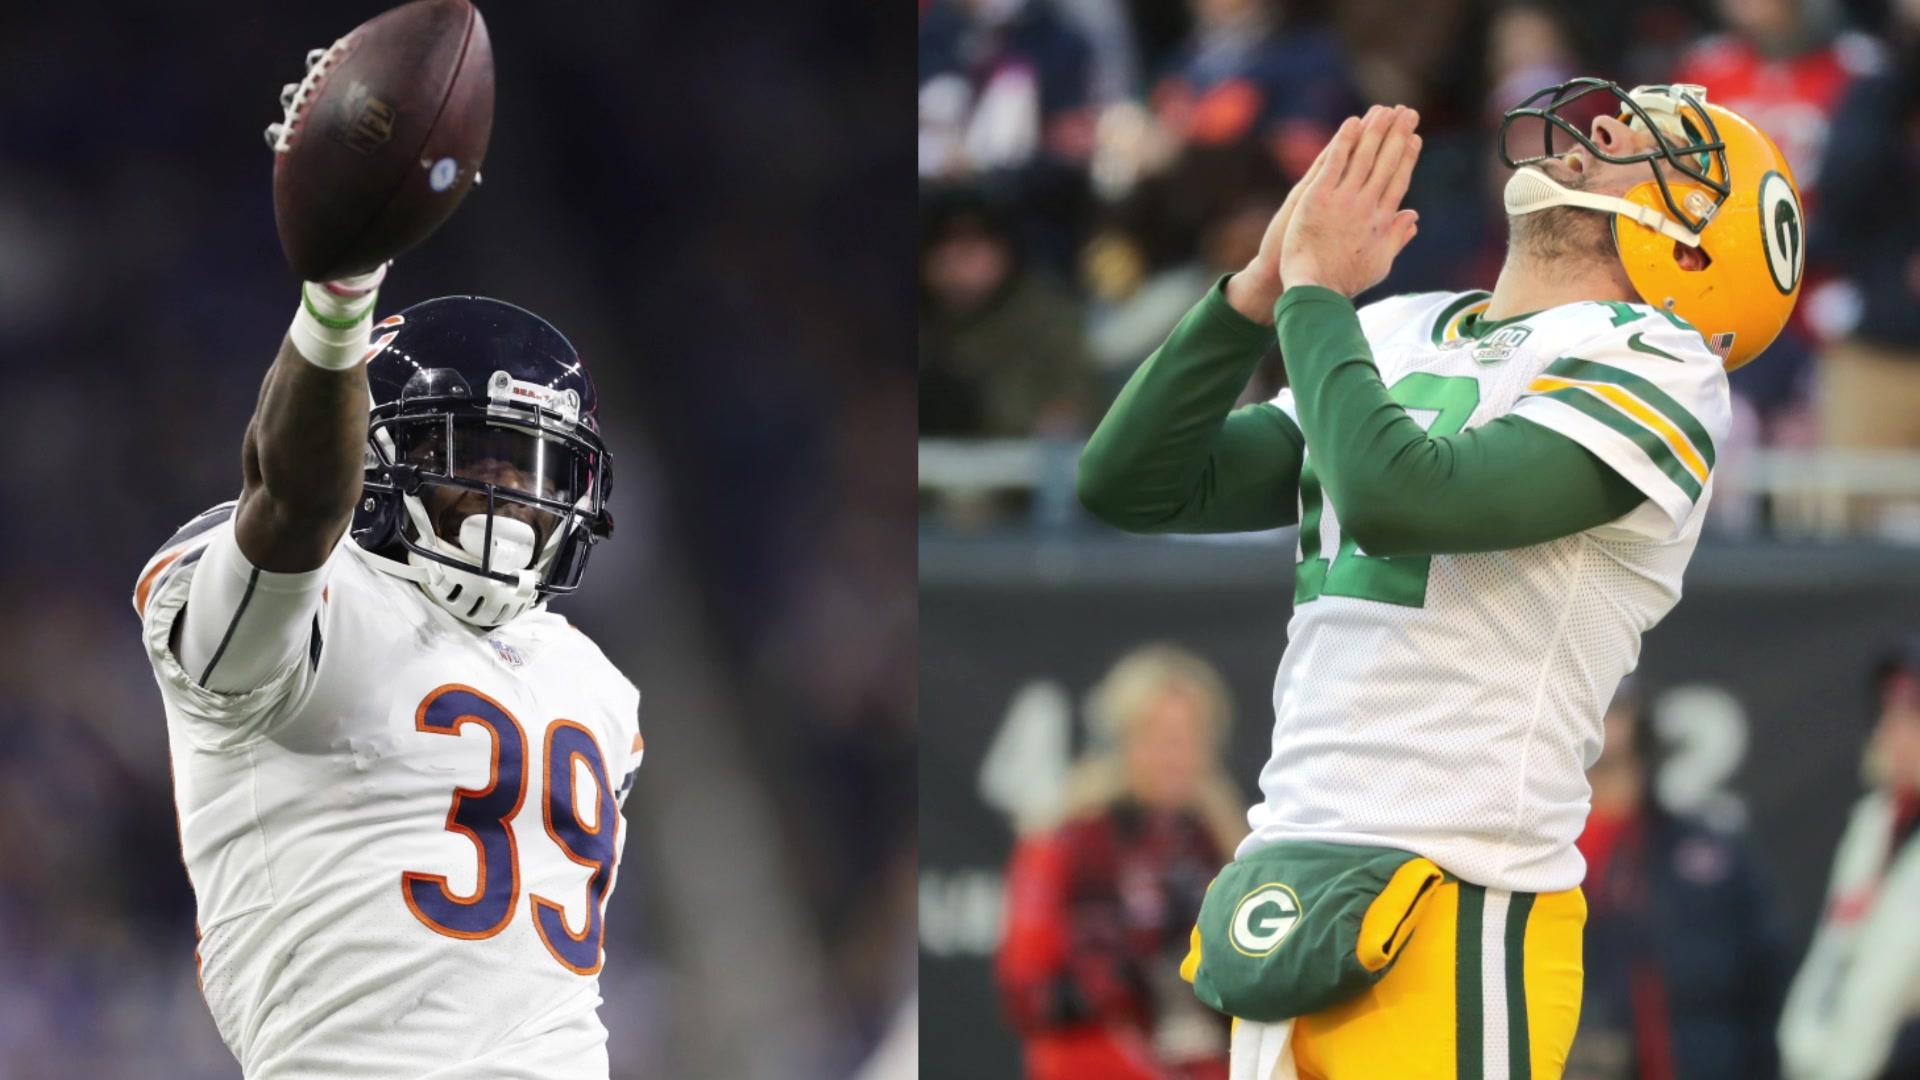 Top Five Chicago Bears matchups after 2019 NFL schedule leaked